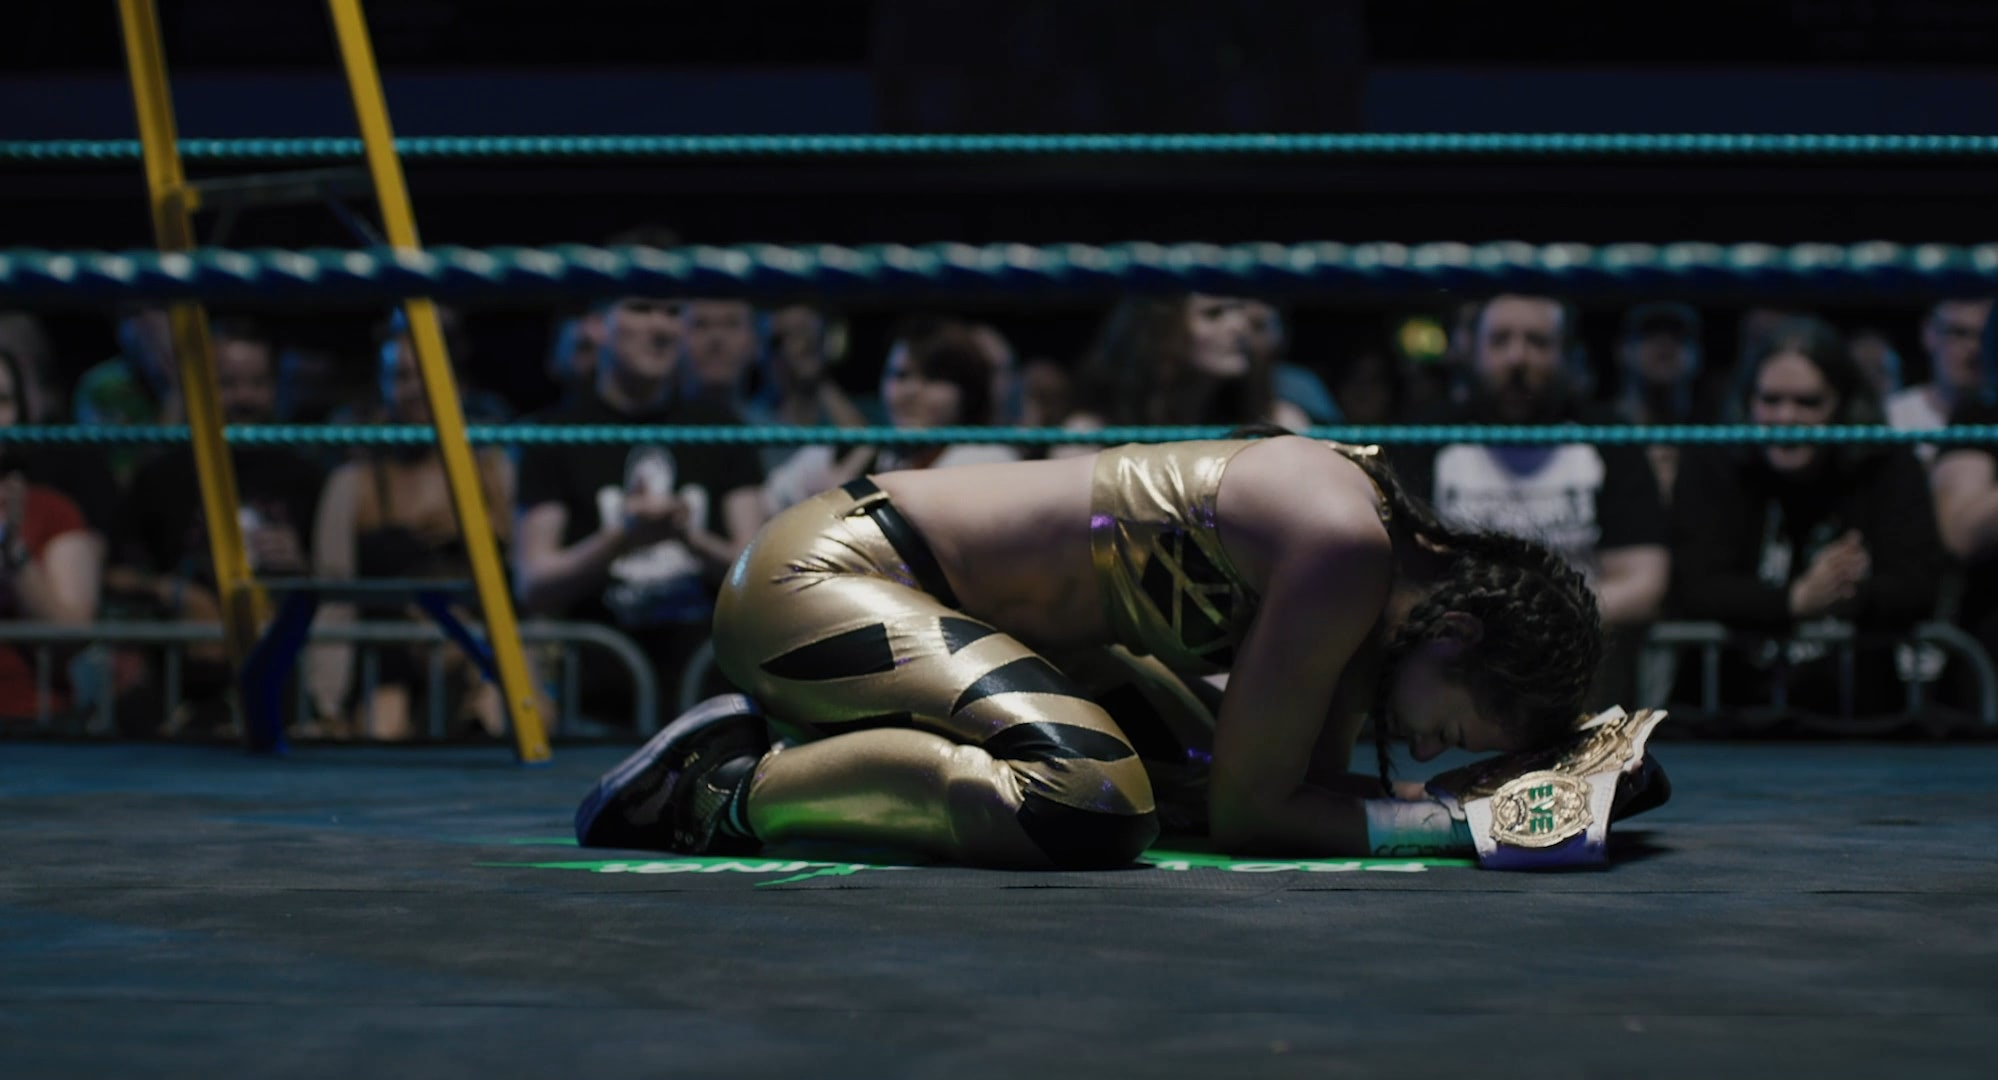 A young woman overcome with emotion kneeling in the wrestling ring, embracing a trophy